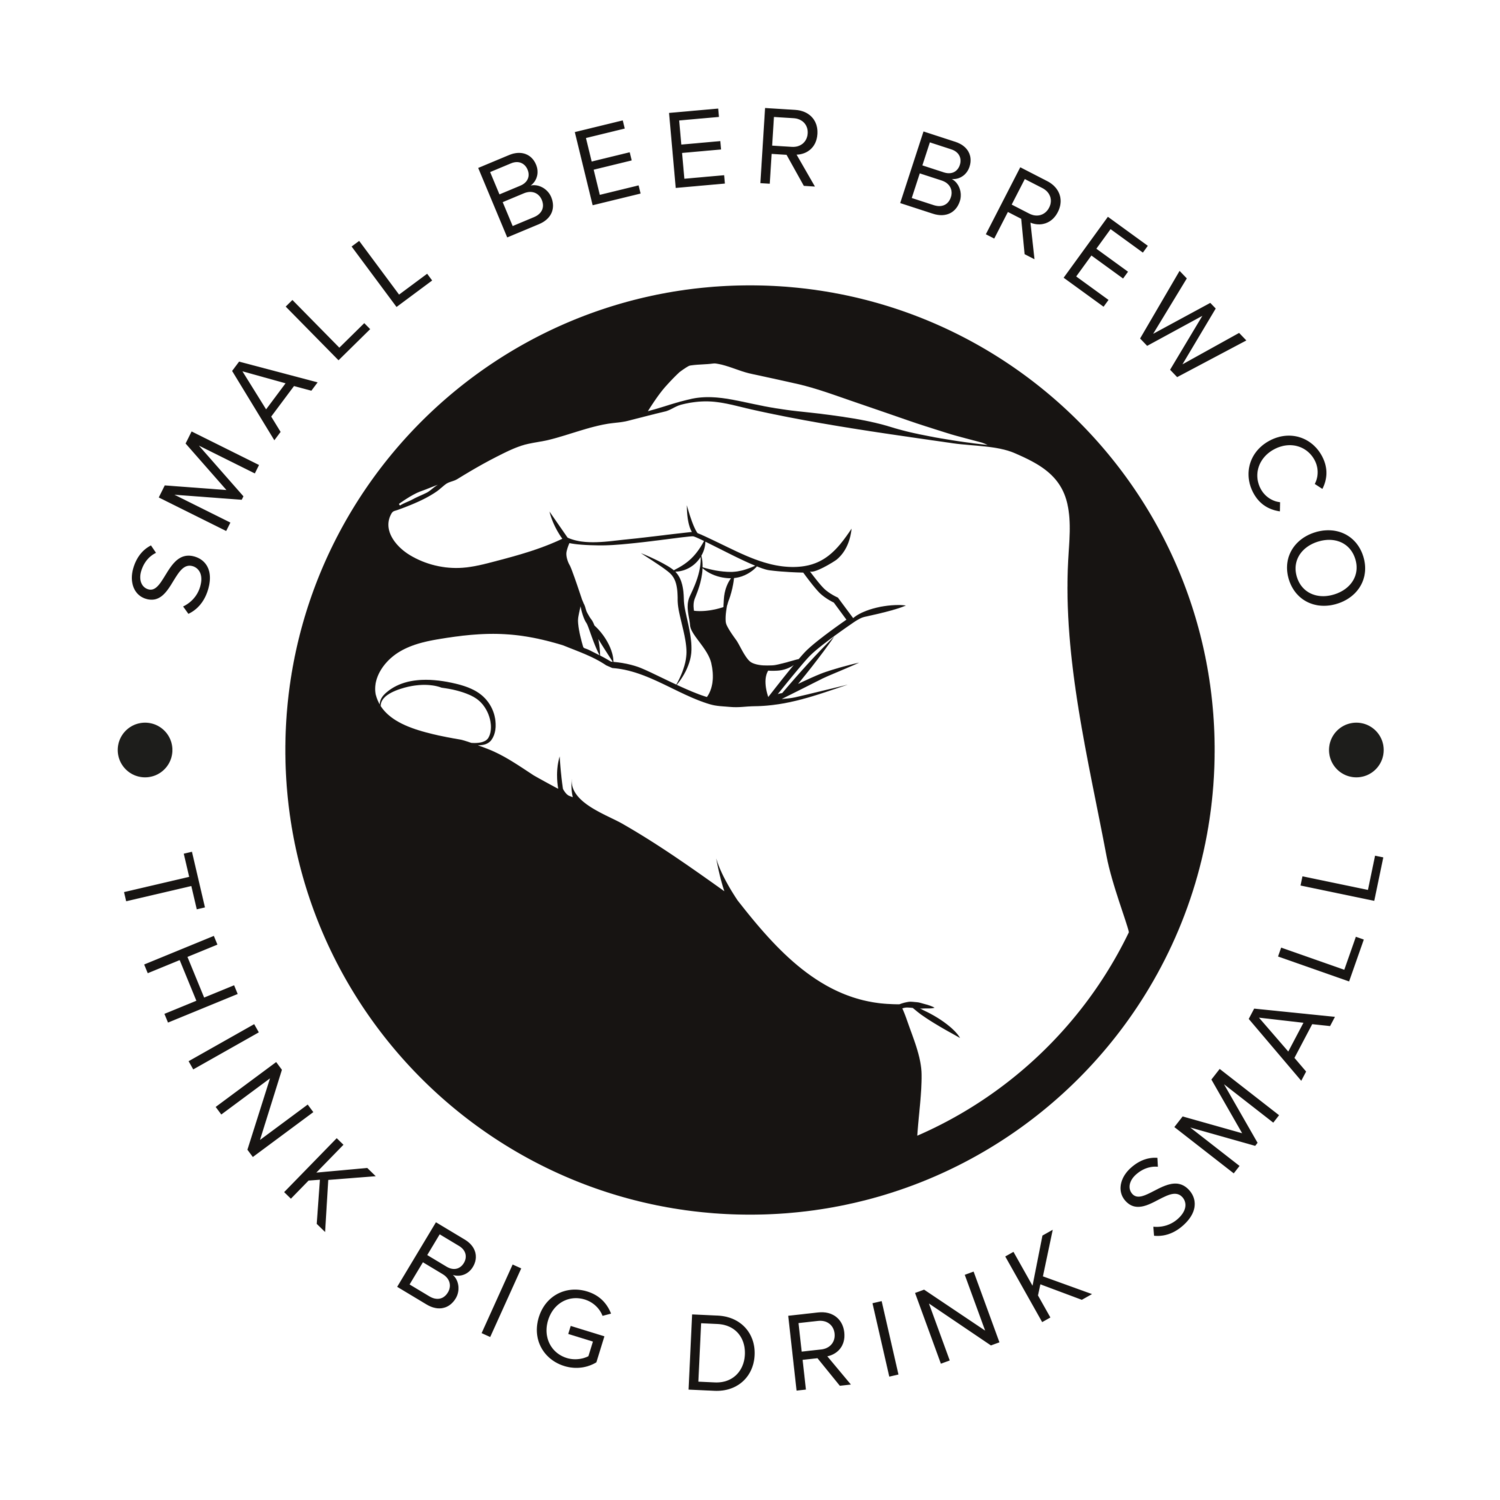 SMALL BEER BREW CO.